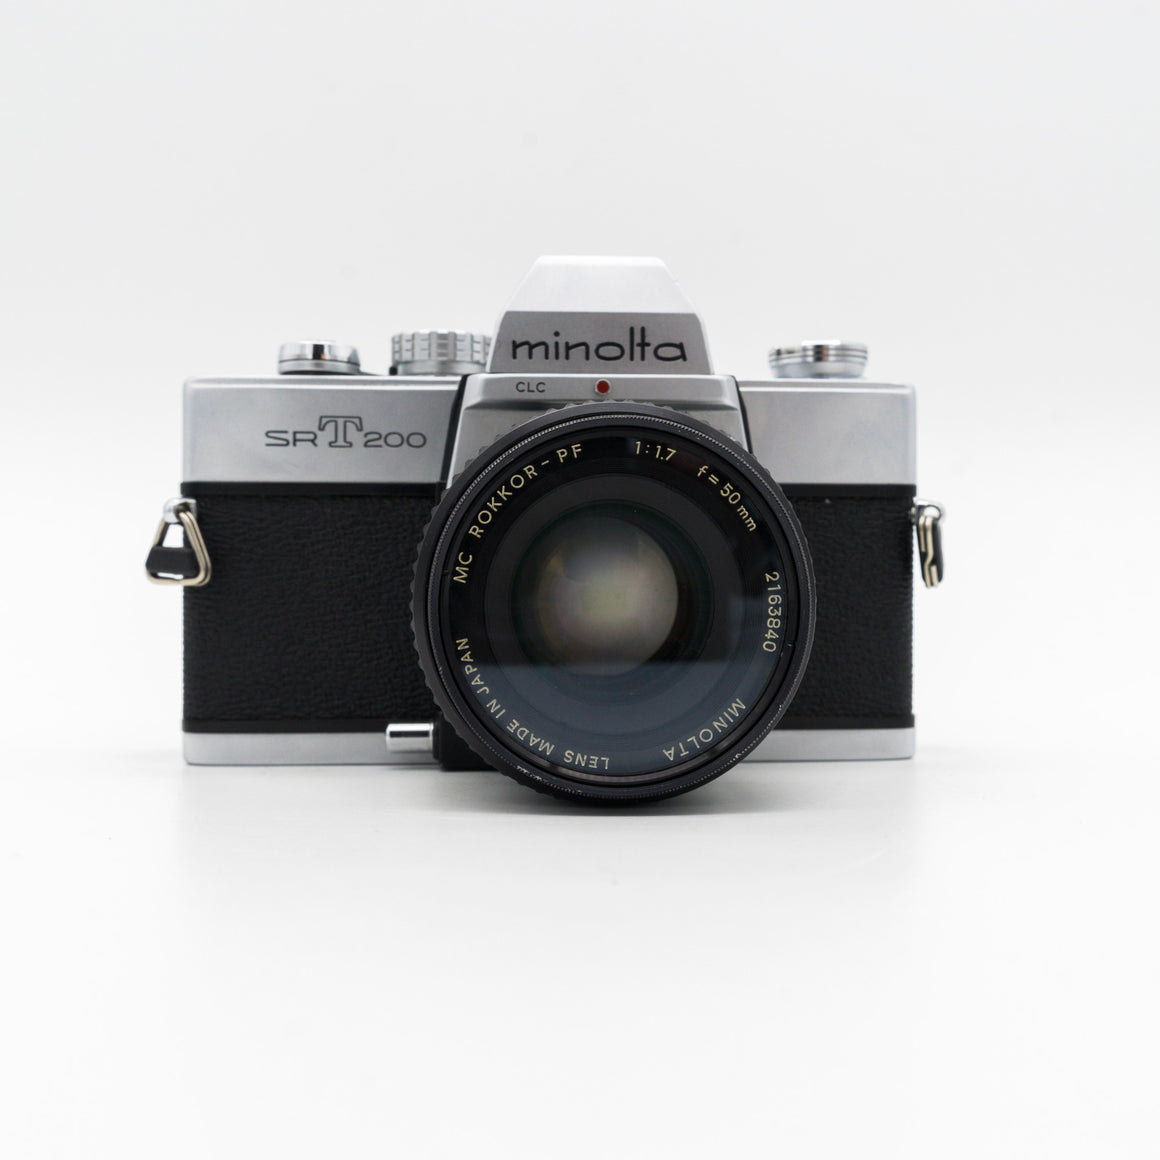 Hasselblad XPan 35mm panoramic rangefinder camera with 45mm f4 lens